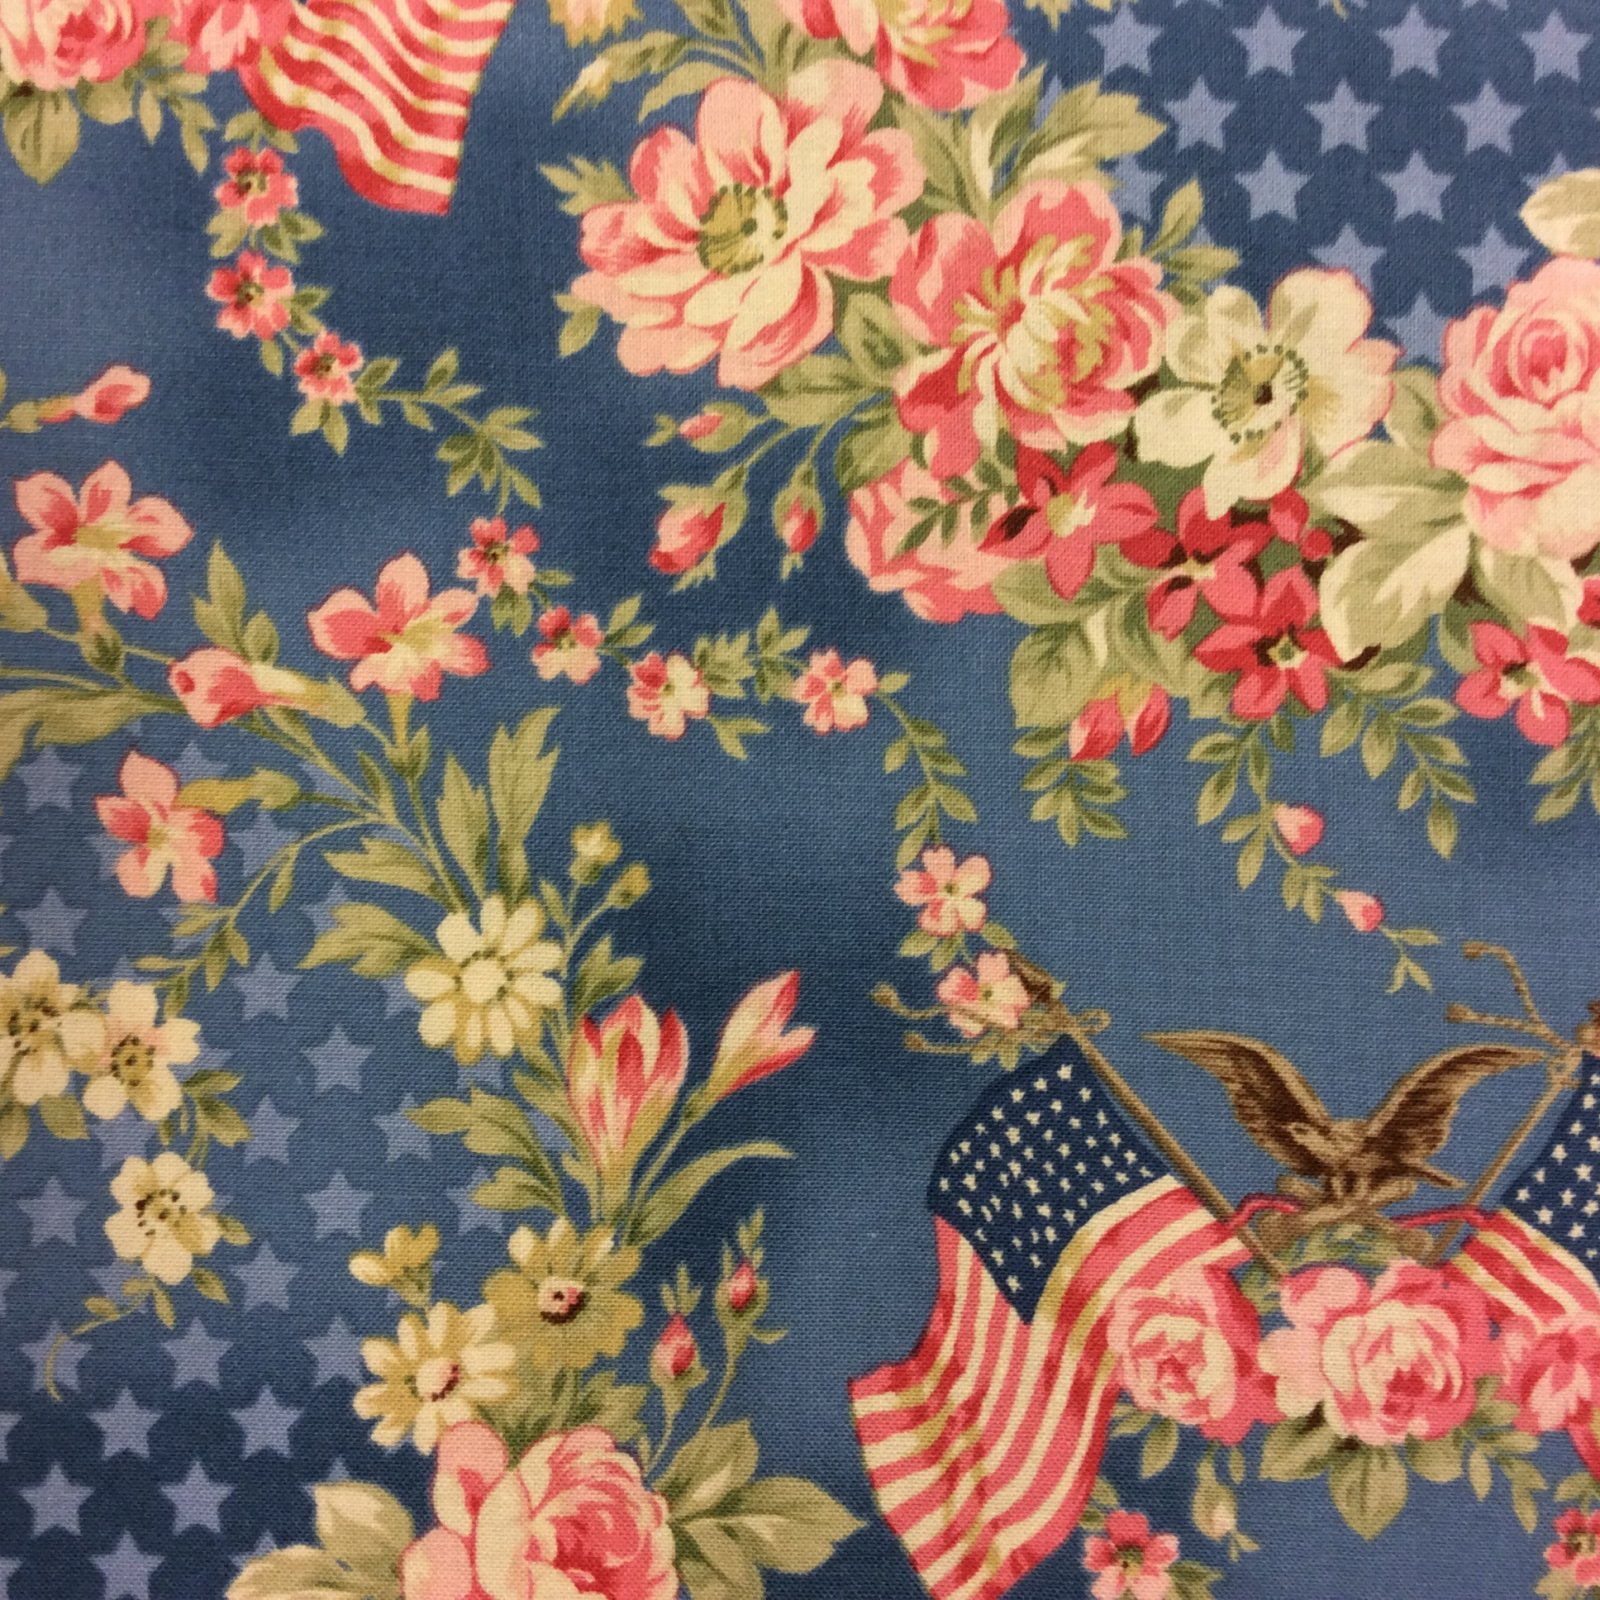 MD68 Victorian Style USA Floral Flag Eagle Star Patriotic Cotton Quilting Fabric